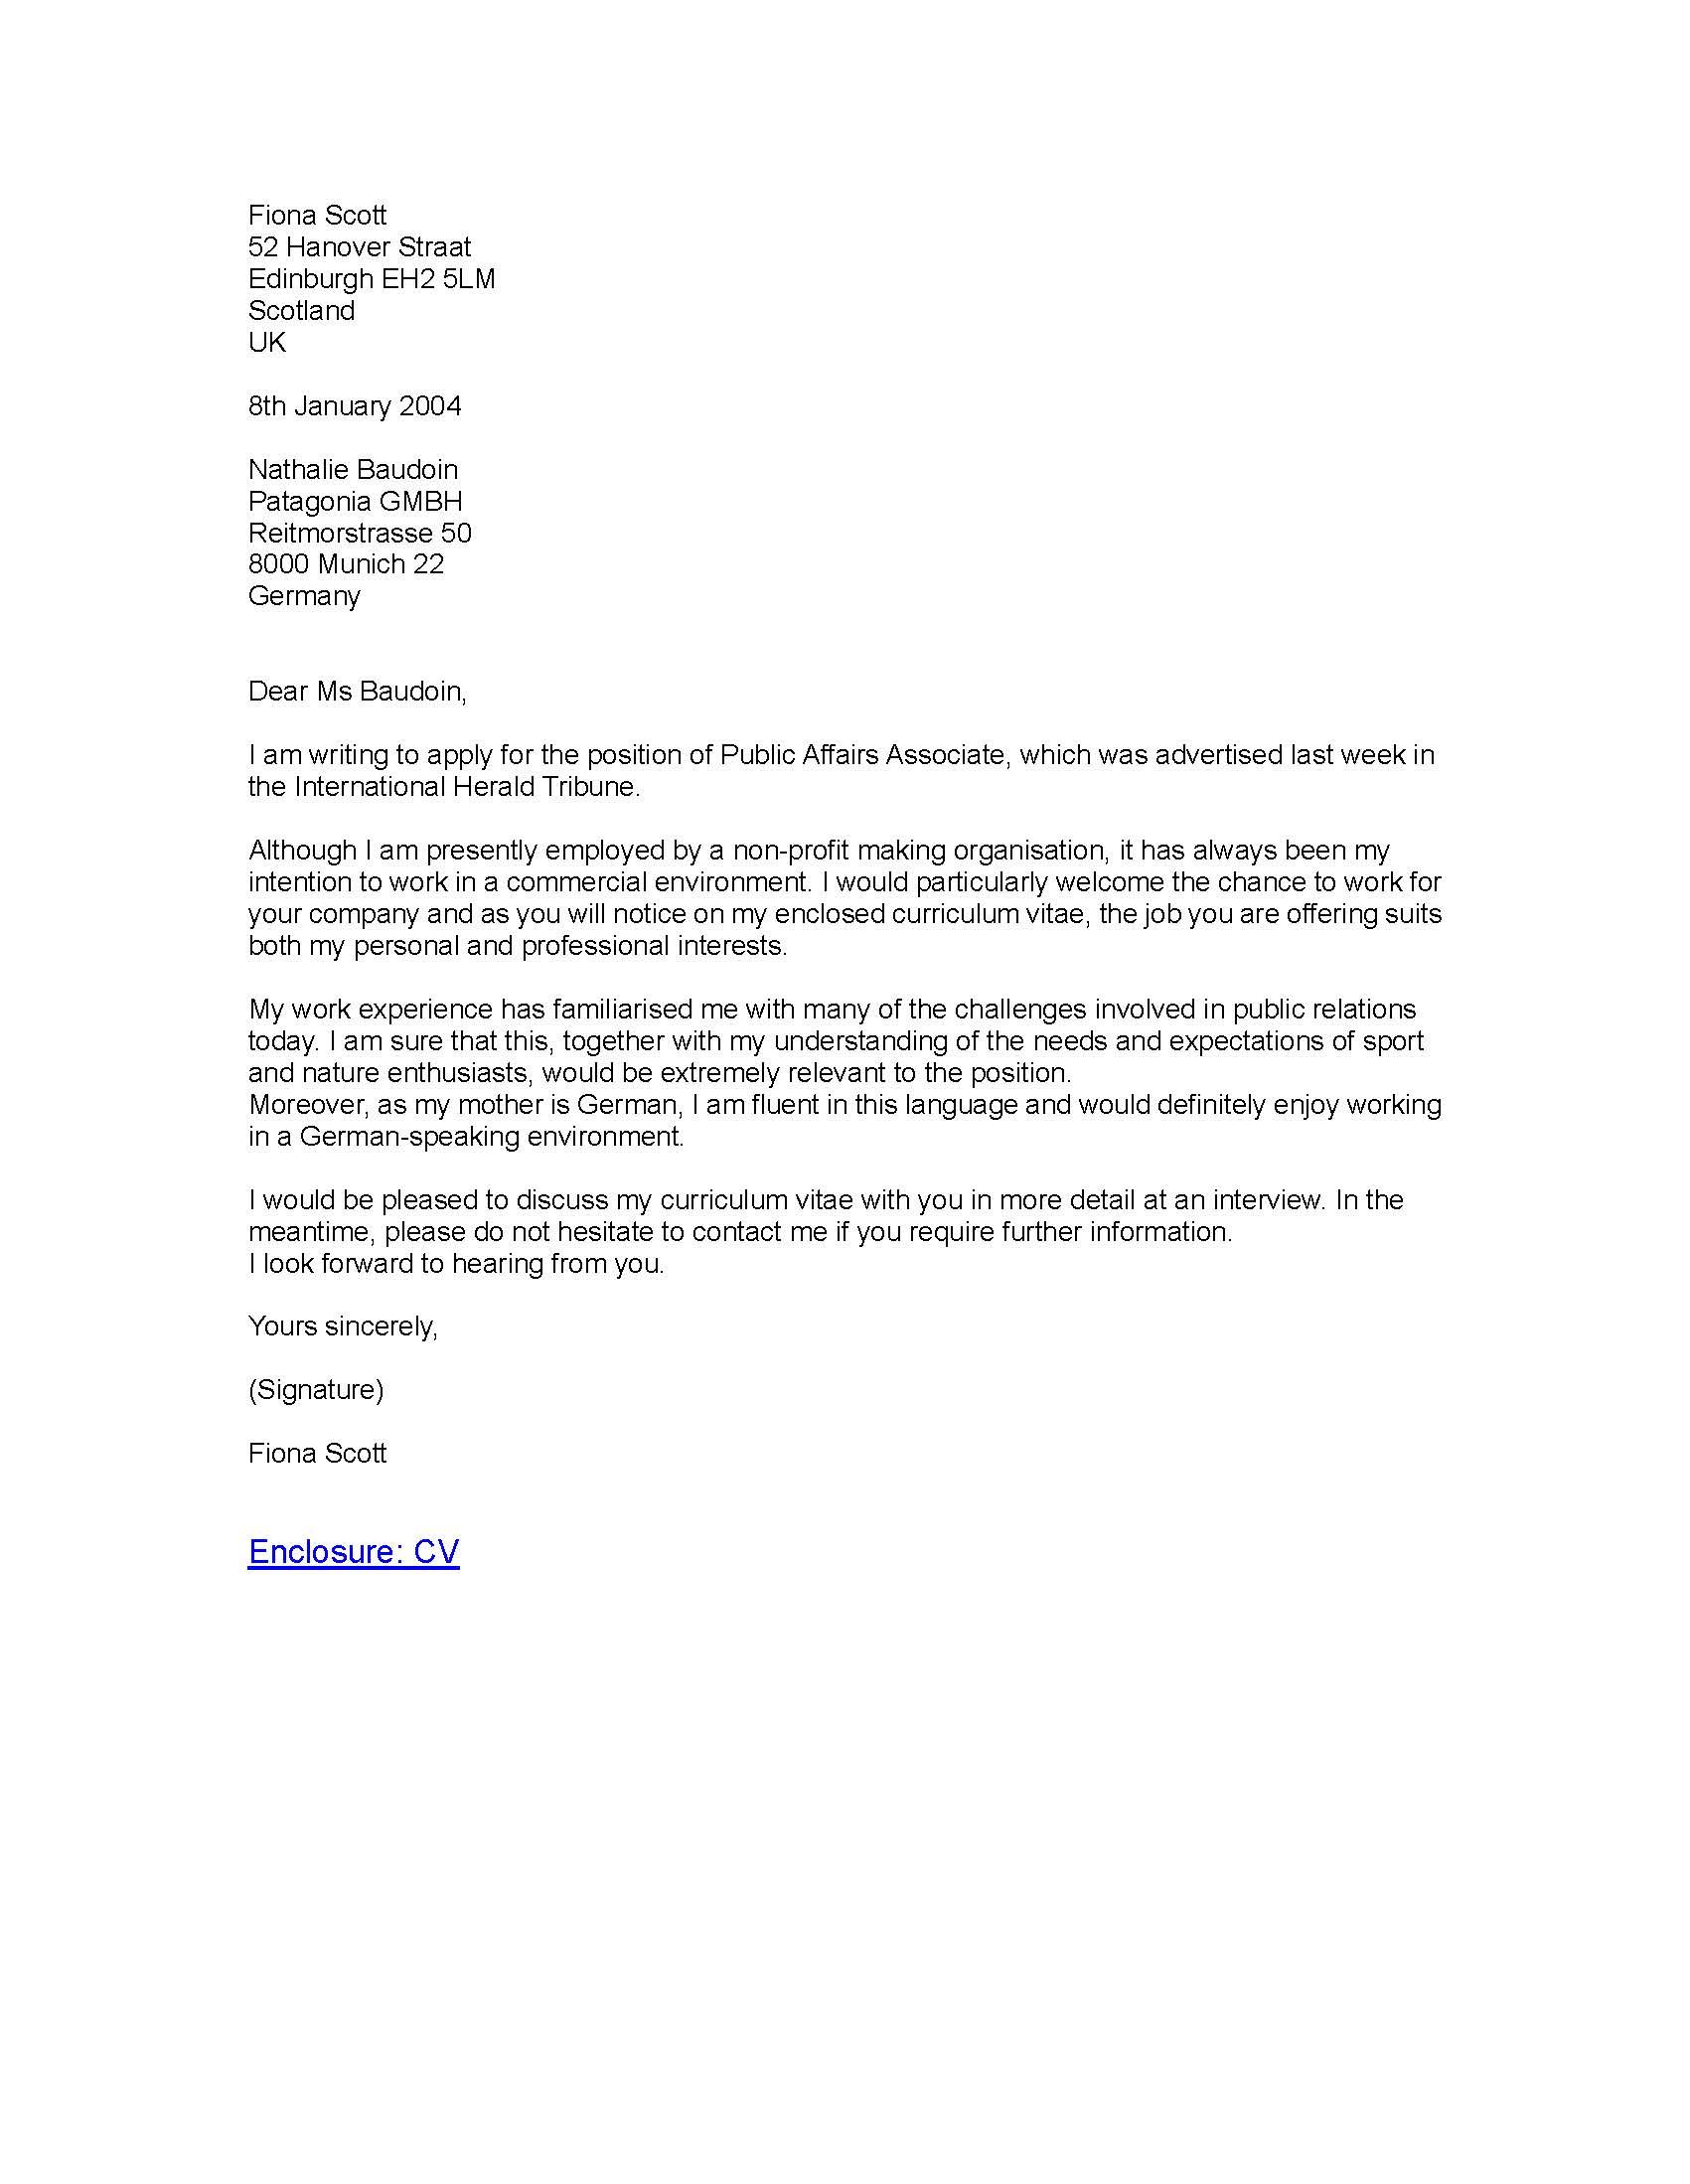 Formal Business Letter Applying For Job Resume Samples